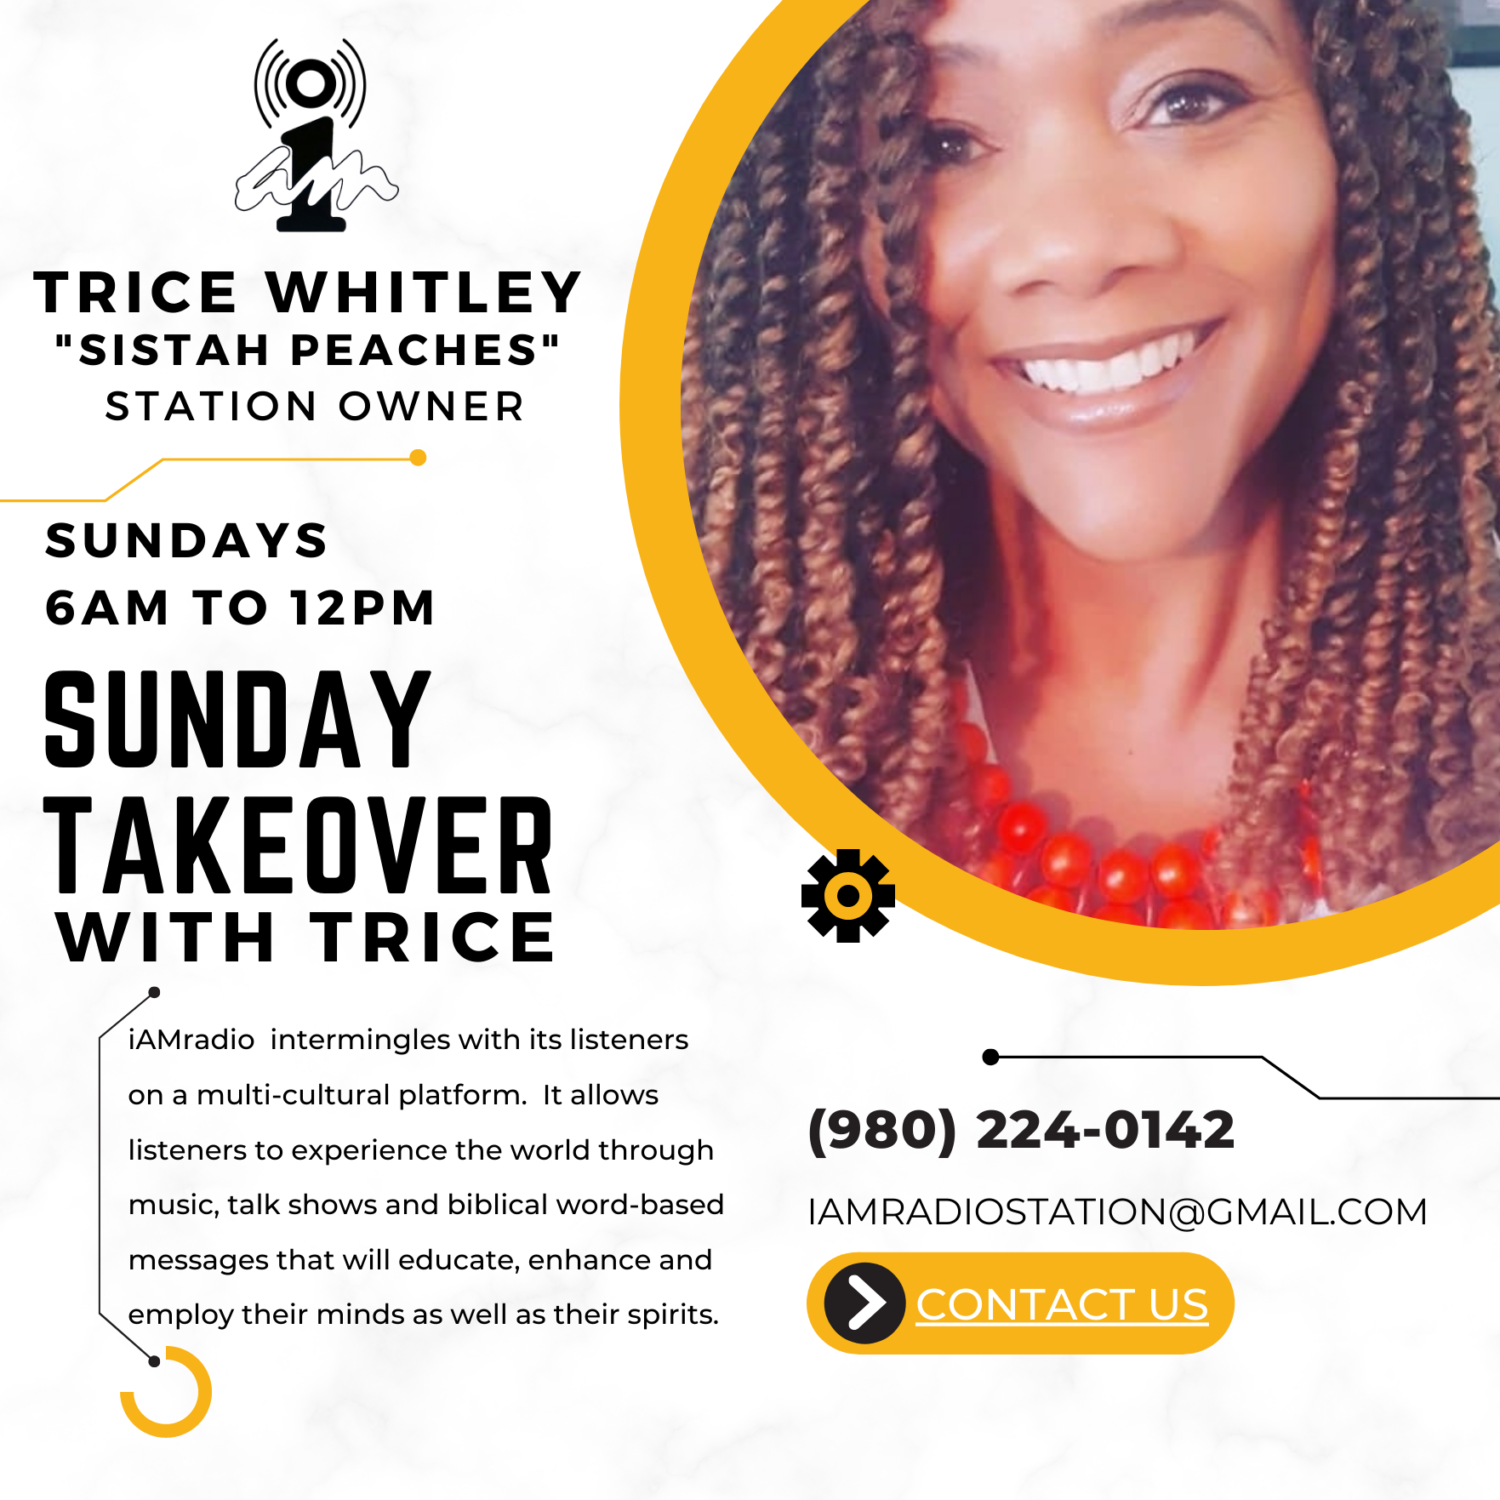 Trice Whitley